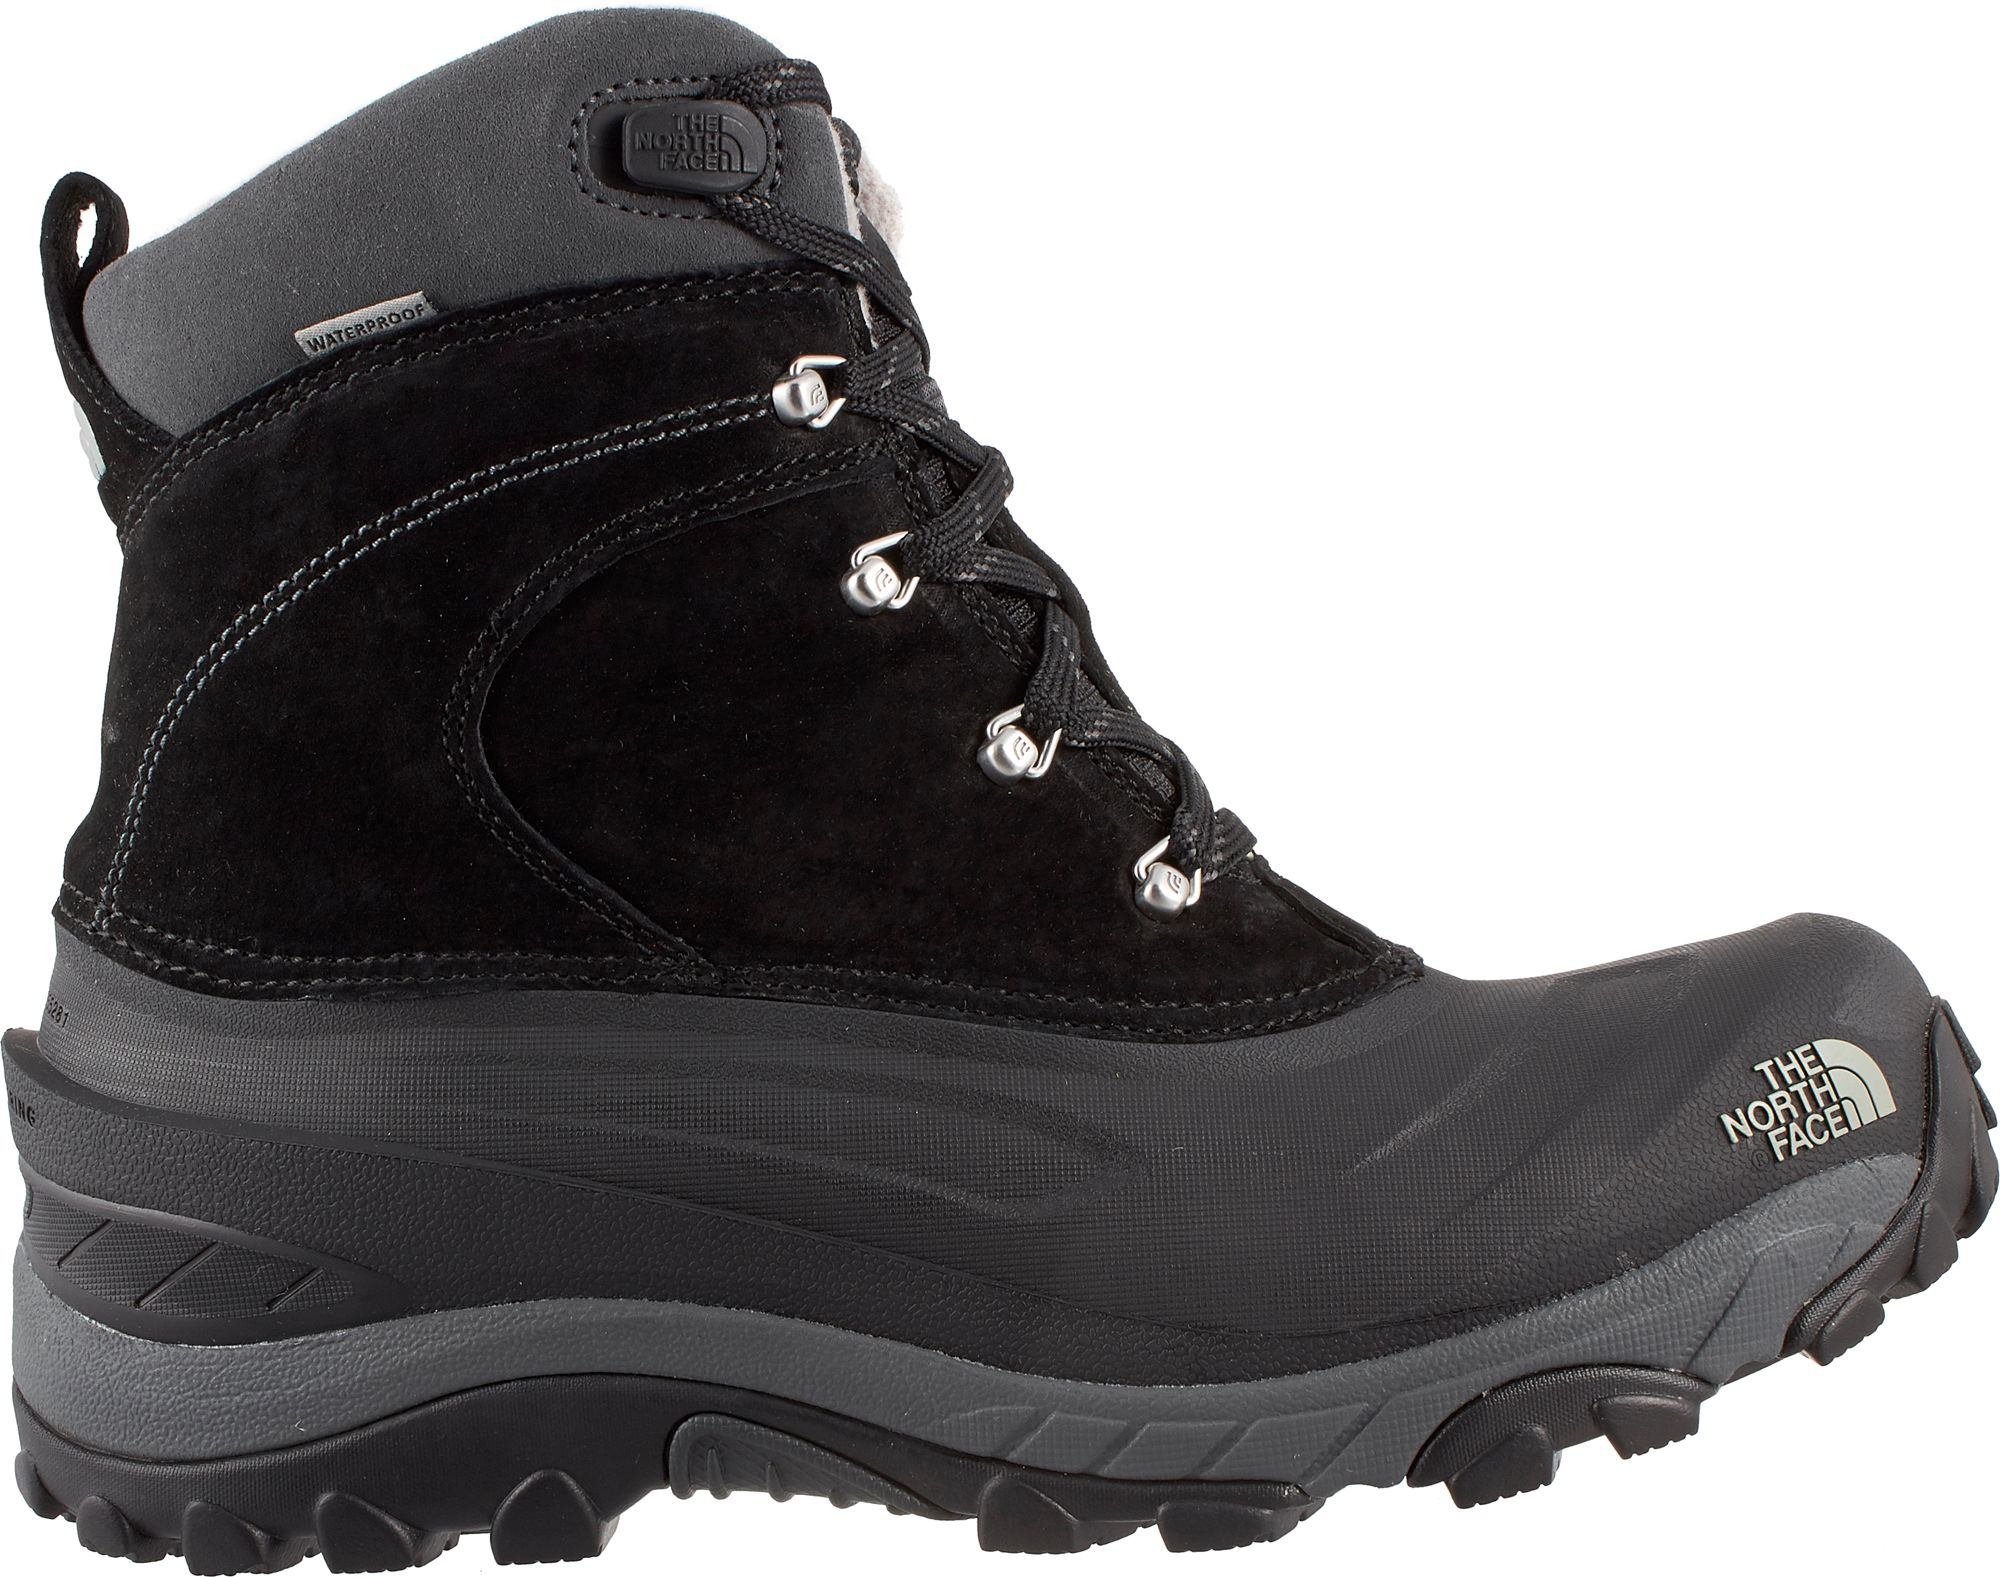 The North Face Men's Chilkat II Waterproof 200g Winter Boots ...